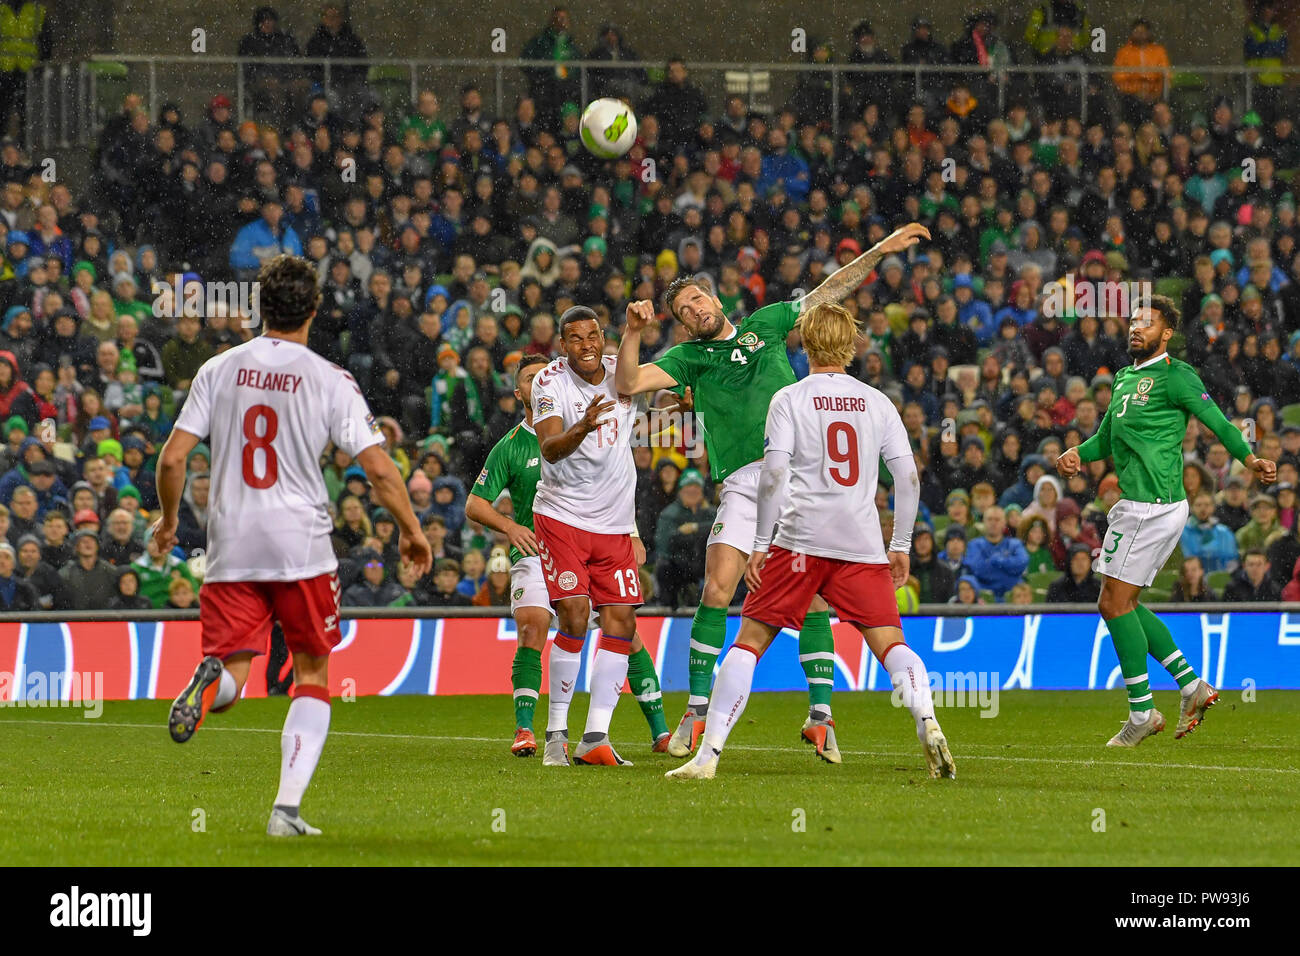 Mathias Jorgensen and Shane Duffy in action during the Rep of Ireland vs Denmark UEFA Nations League match at the Aviva Stadium. Score 0-0 - Stock Image